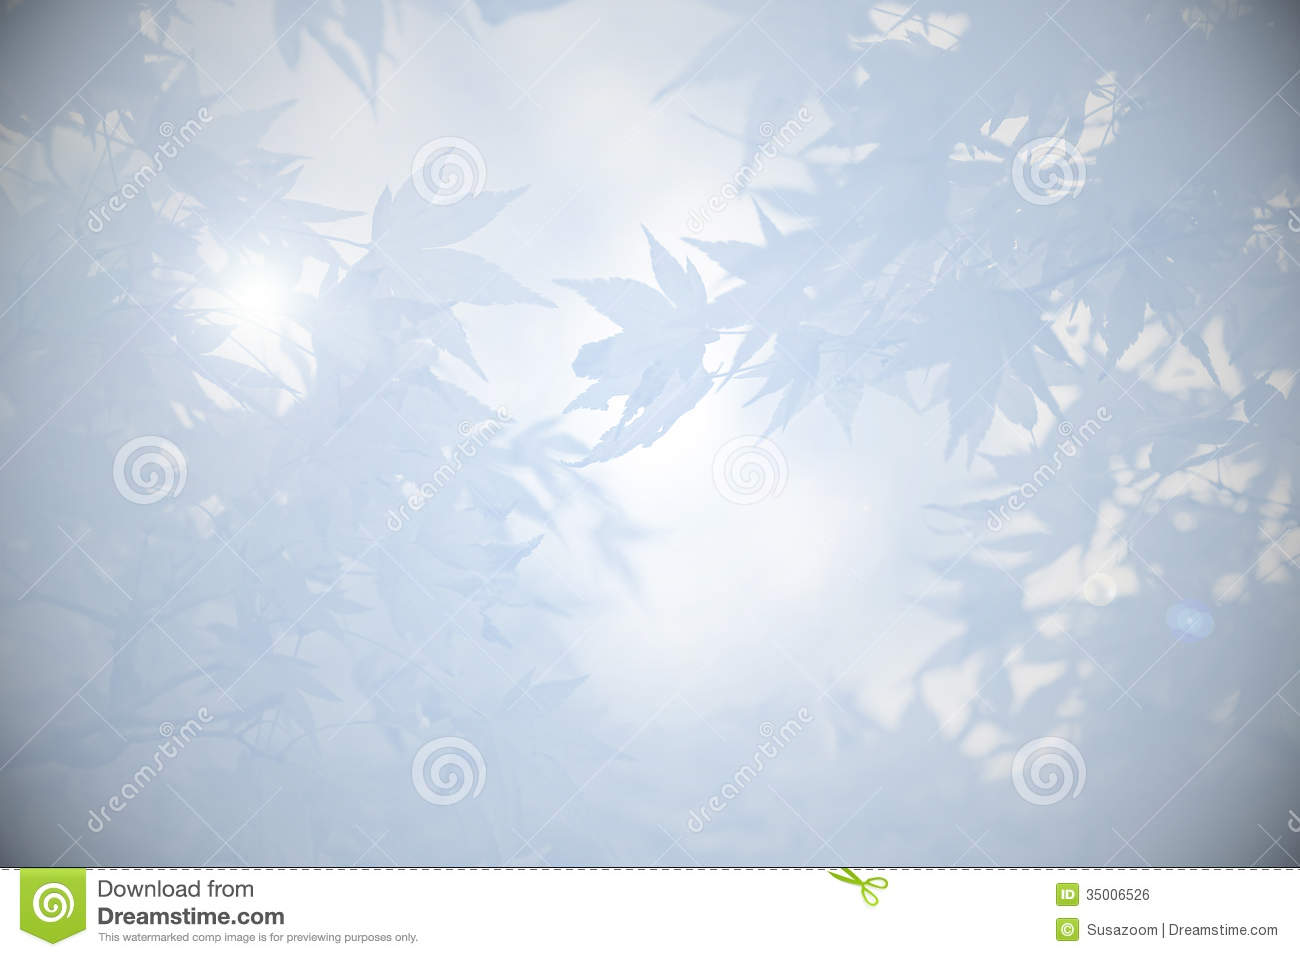 Mourning background with leaves in shades of grey